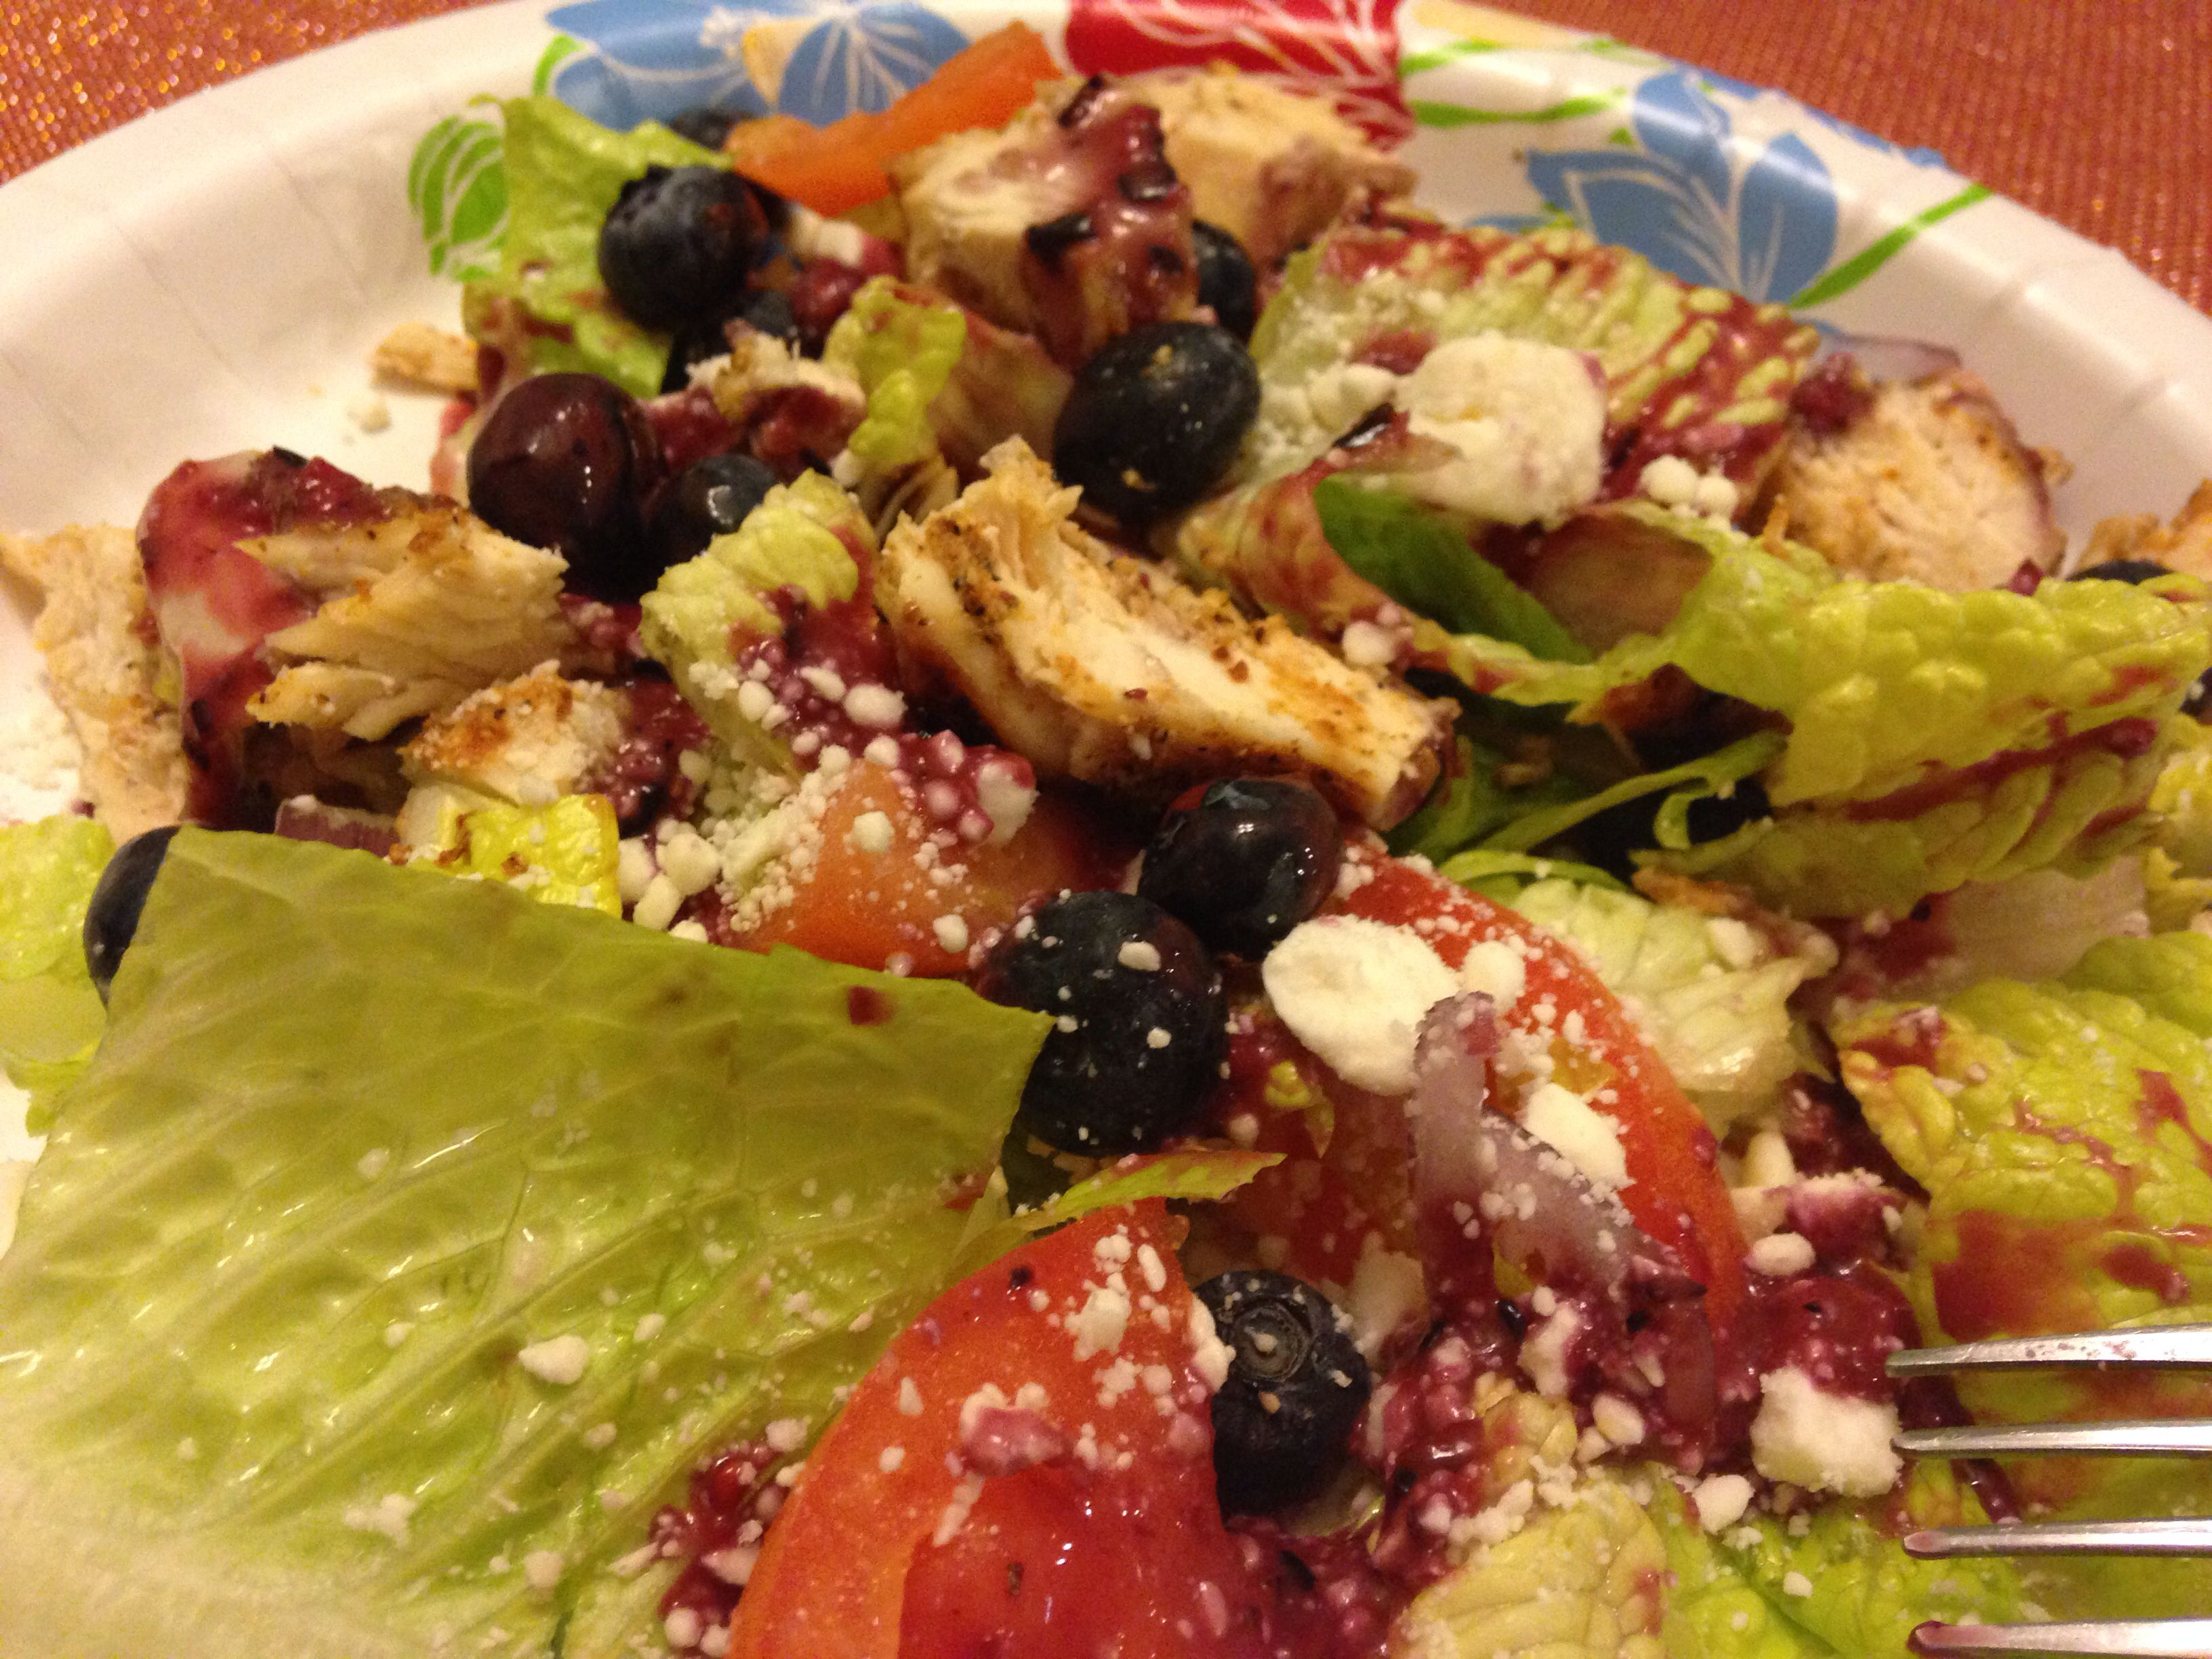 Grilled chicken, blueberry, feta salad with a berry balsamic vinaigrette. 315 calories.